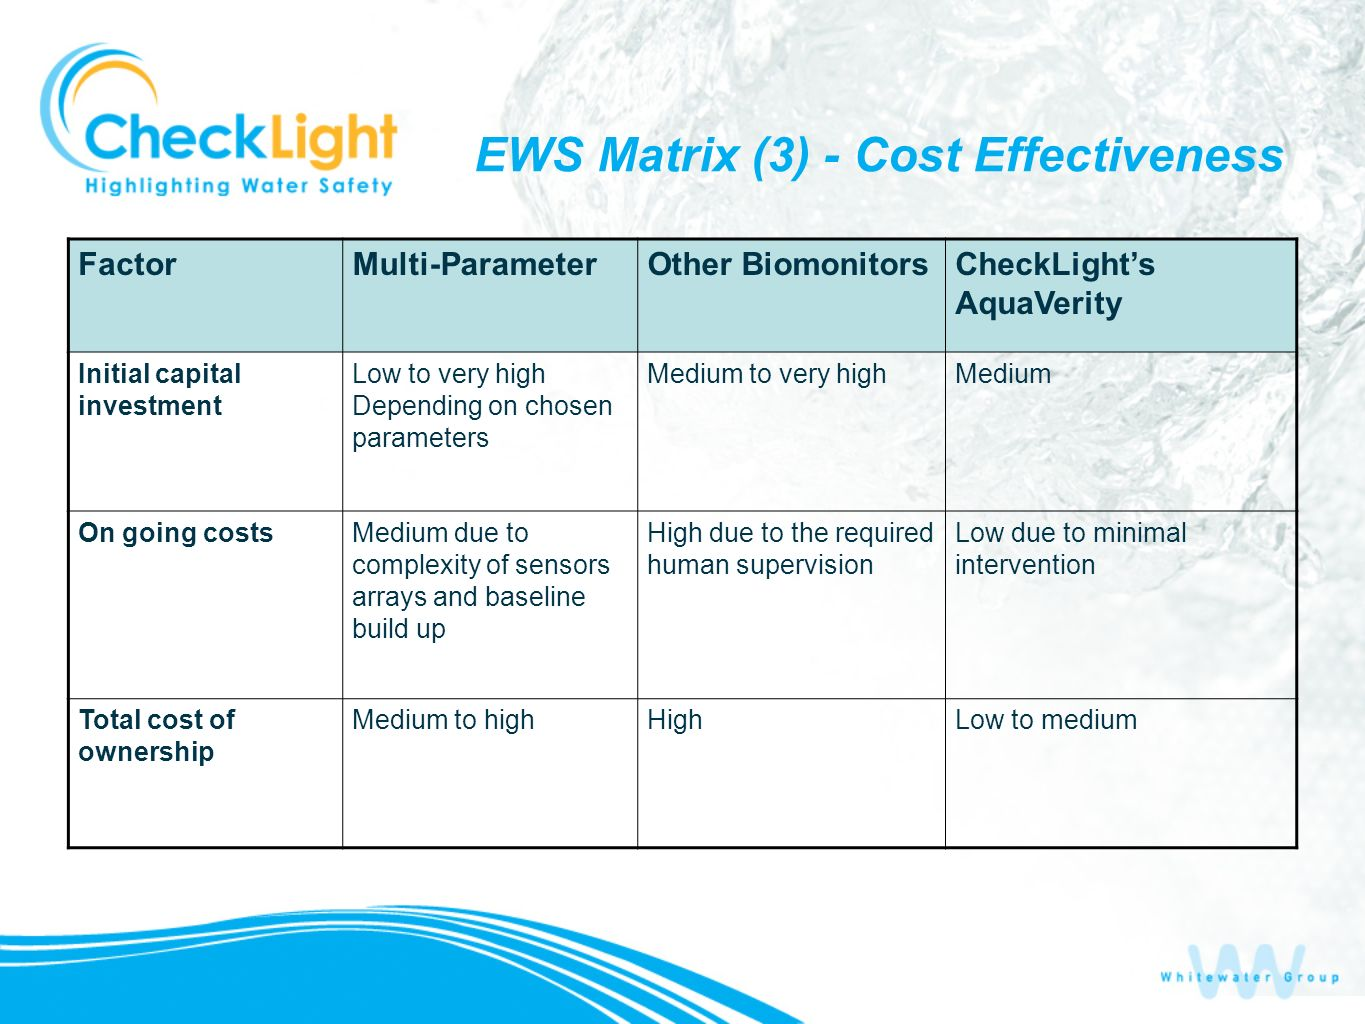 EWS Matrix (3) - Cost Effectiveness CheckLights AquaVerity Other BiomonitorsMulti-ParameterFactor MediumMedium to very highLow to very high Depending on chosen parameters Initial capital investment Low due to minimal intervention High due to the required human supervision Medium due to complexity of sensors arrays and baseline build up On going costs Low to mediumHighMedium to highTotal cost of ownership